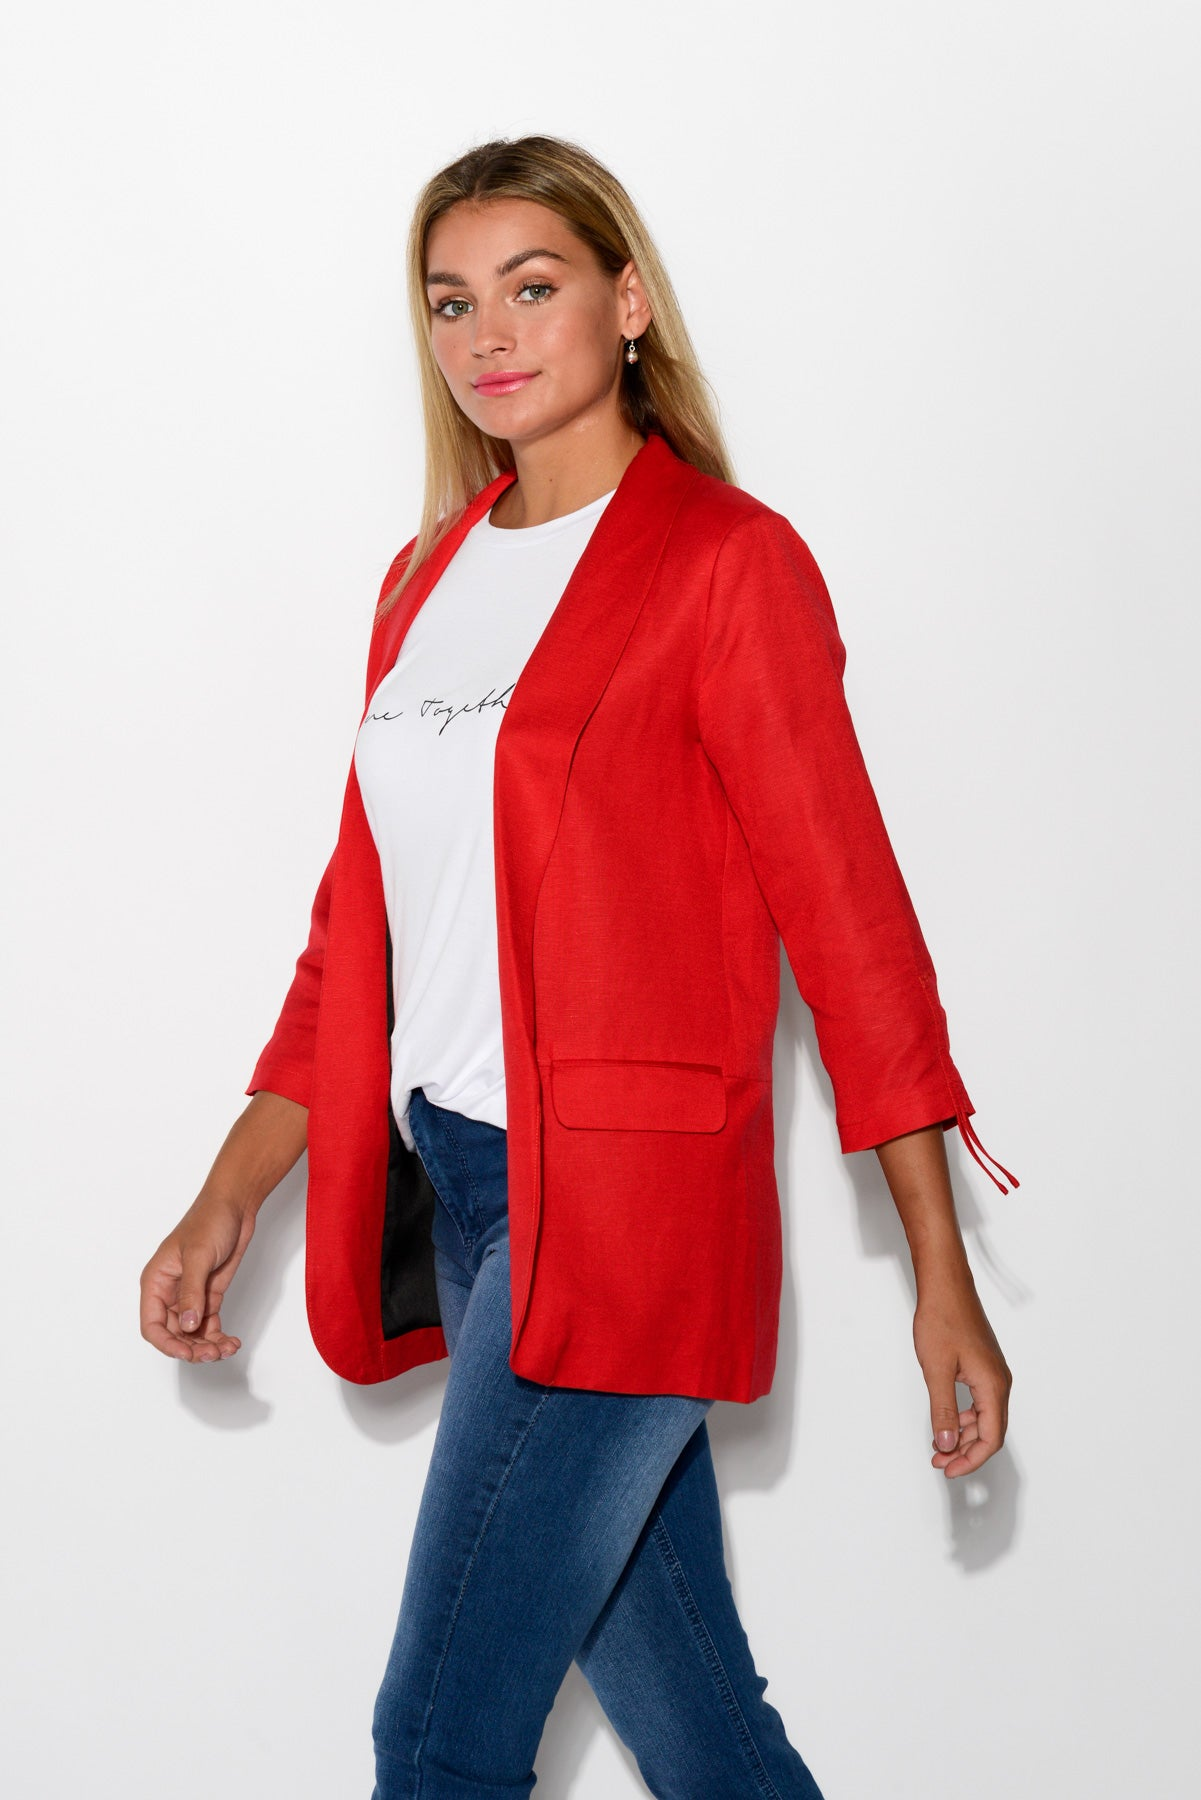 Raven Red Linen Blend Blazer - Blue Bungalow